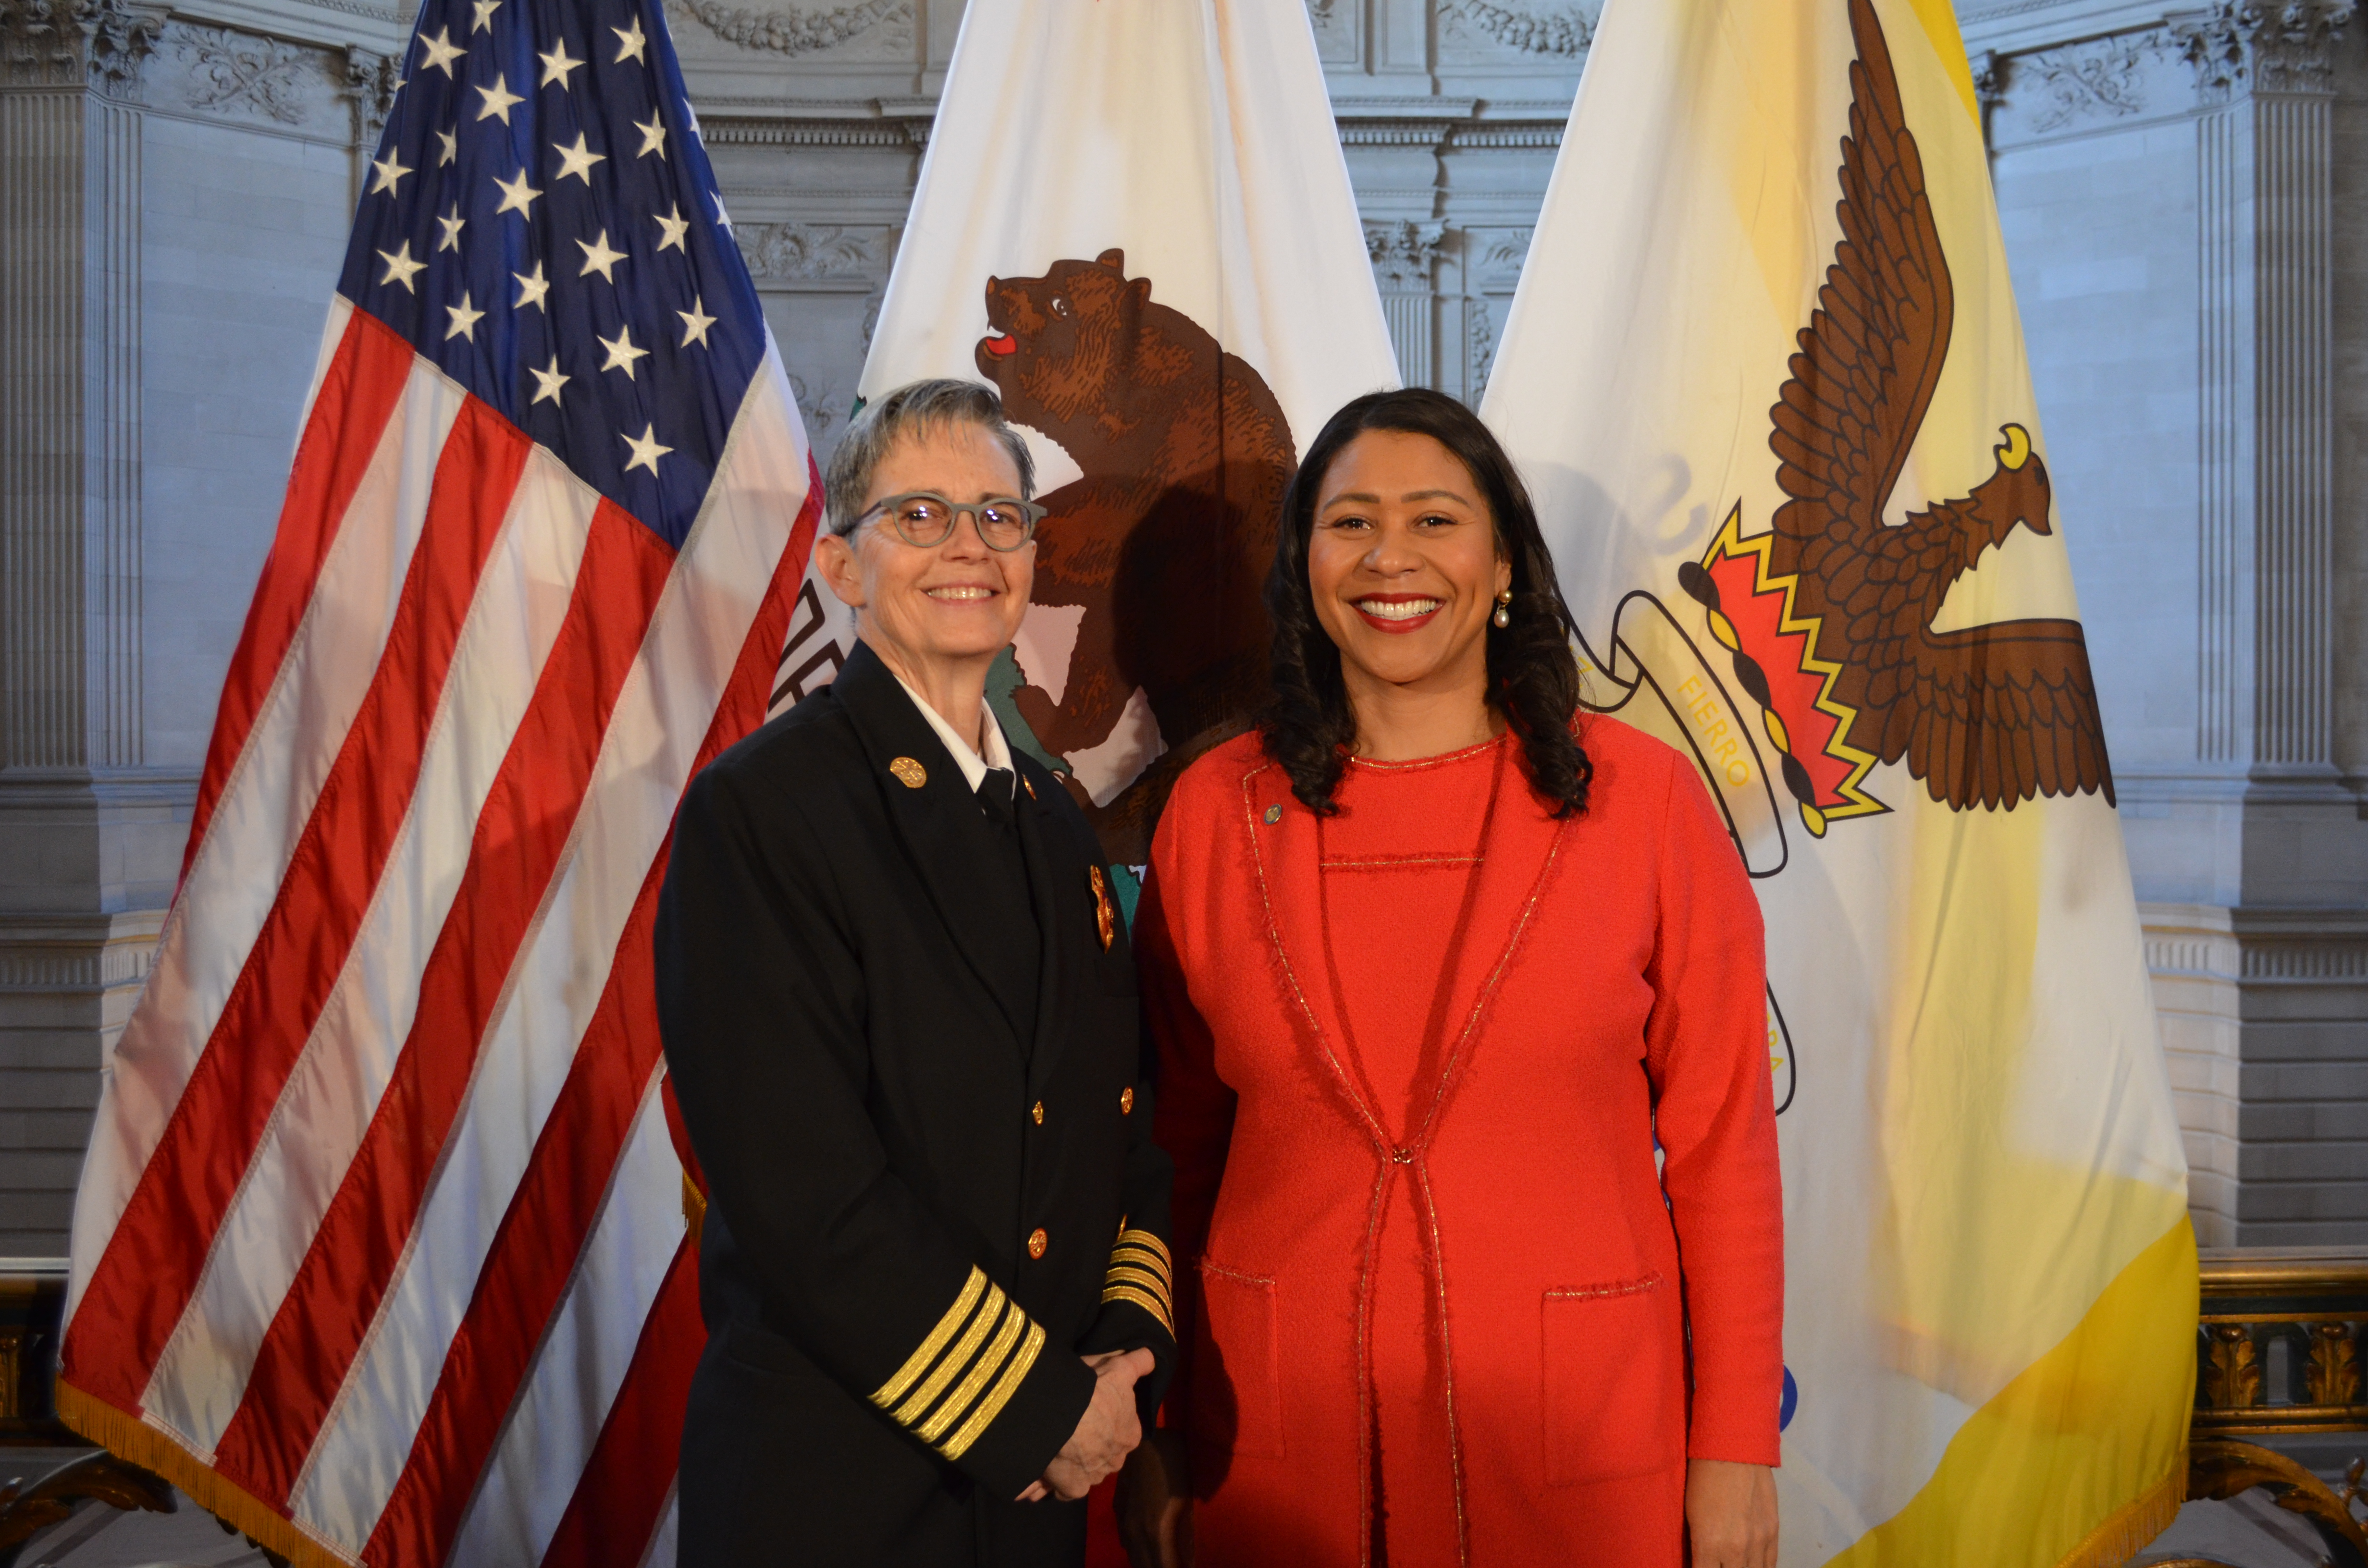 Newly announced Fire Chief Jeanine Nicholson and Mayor Breed